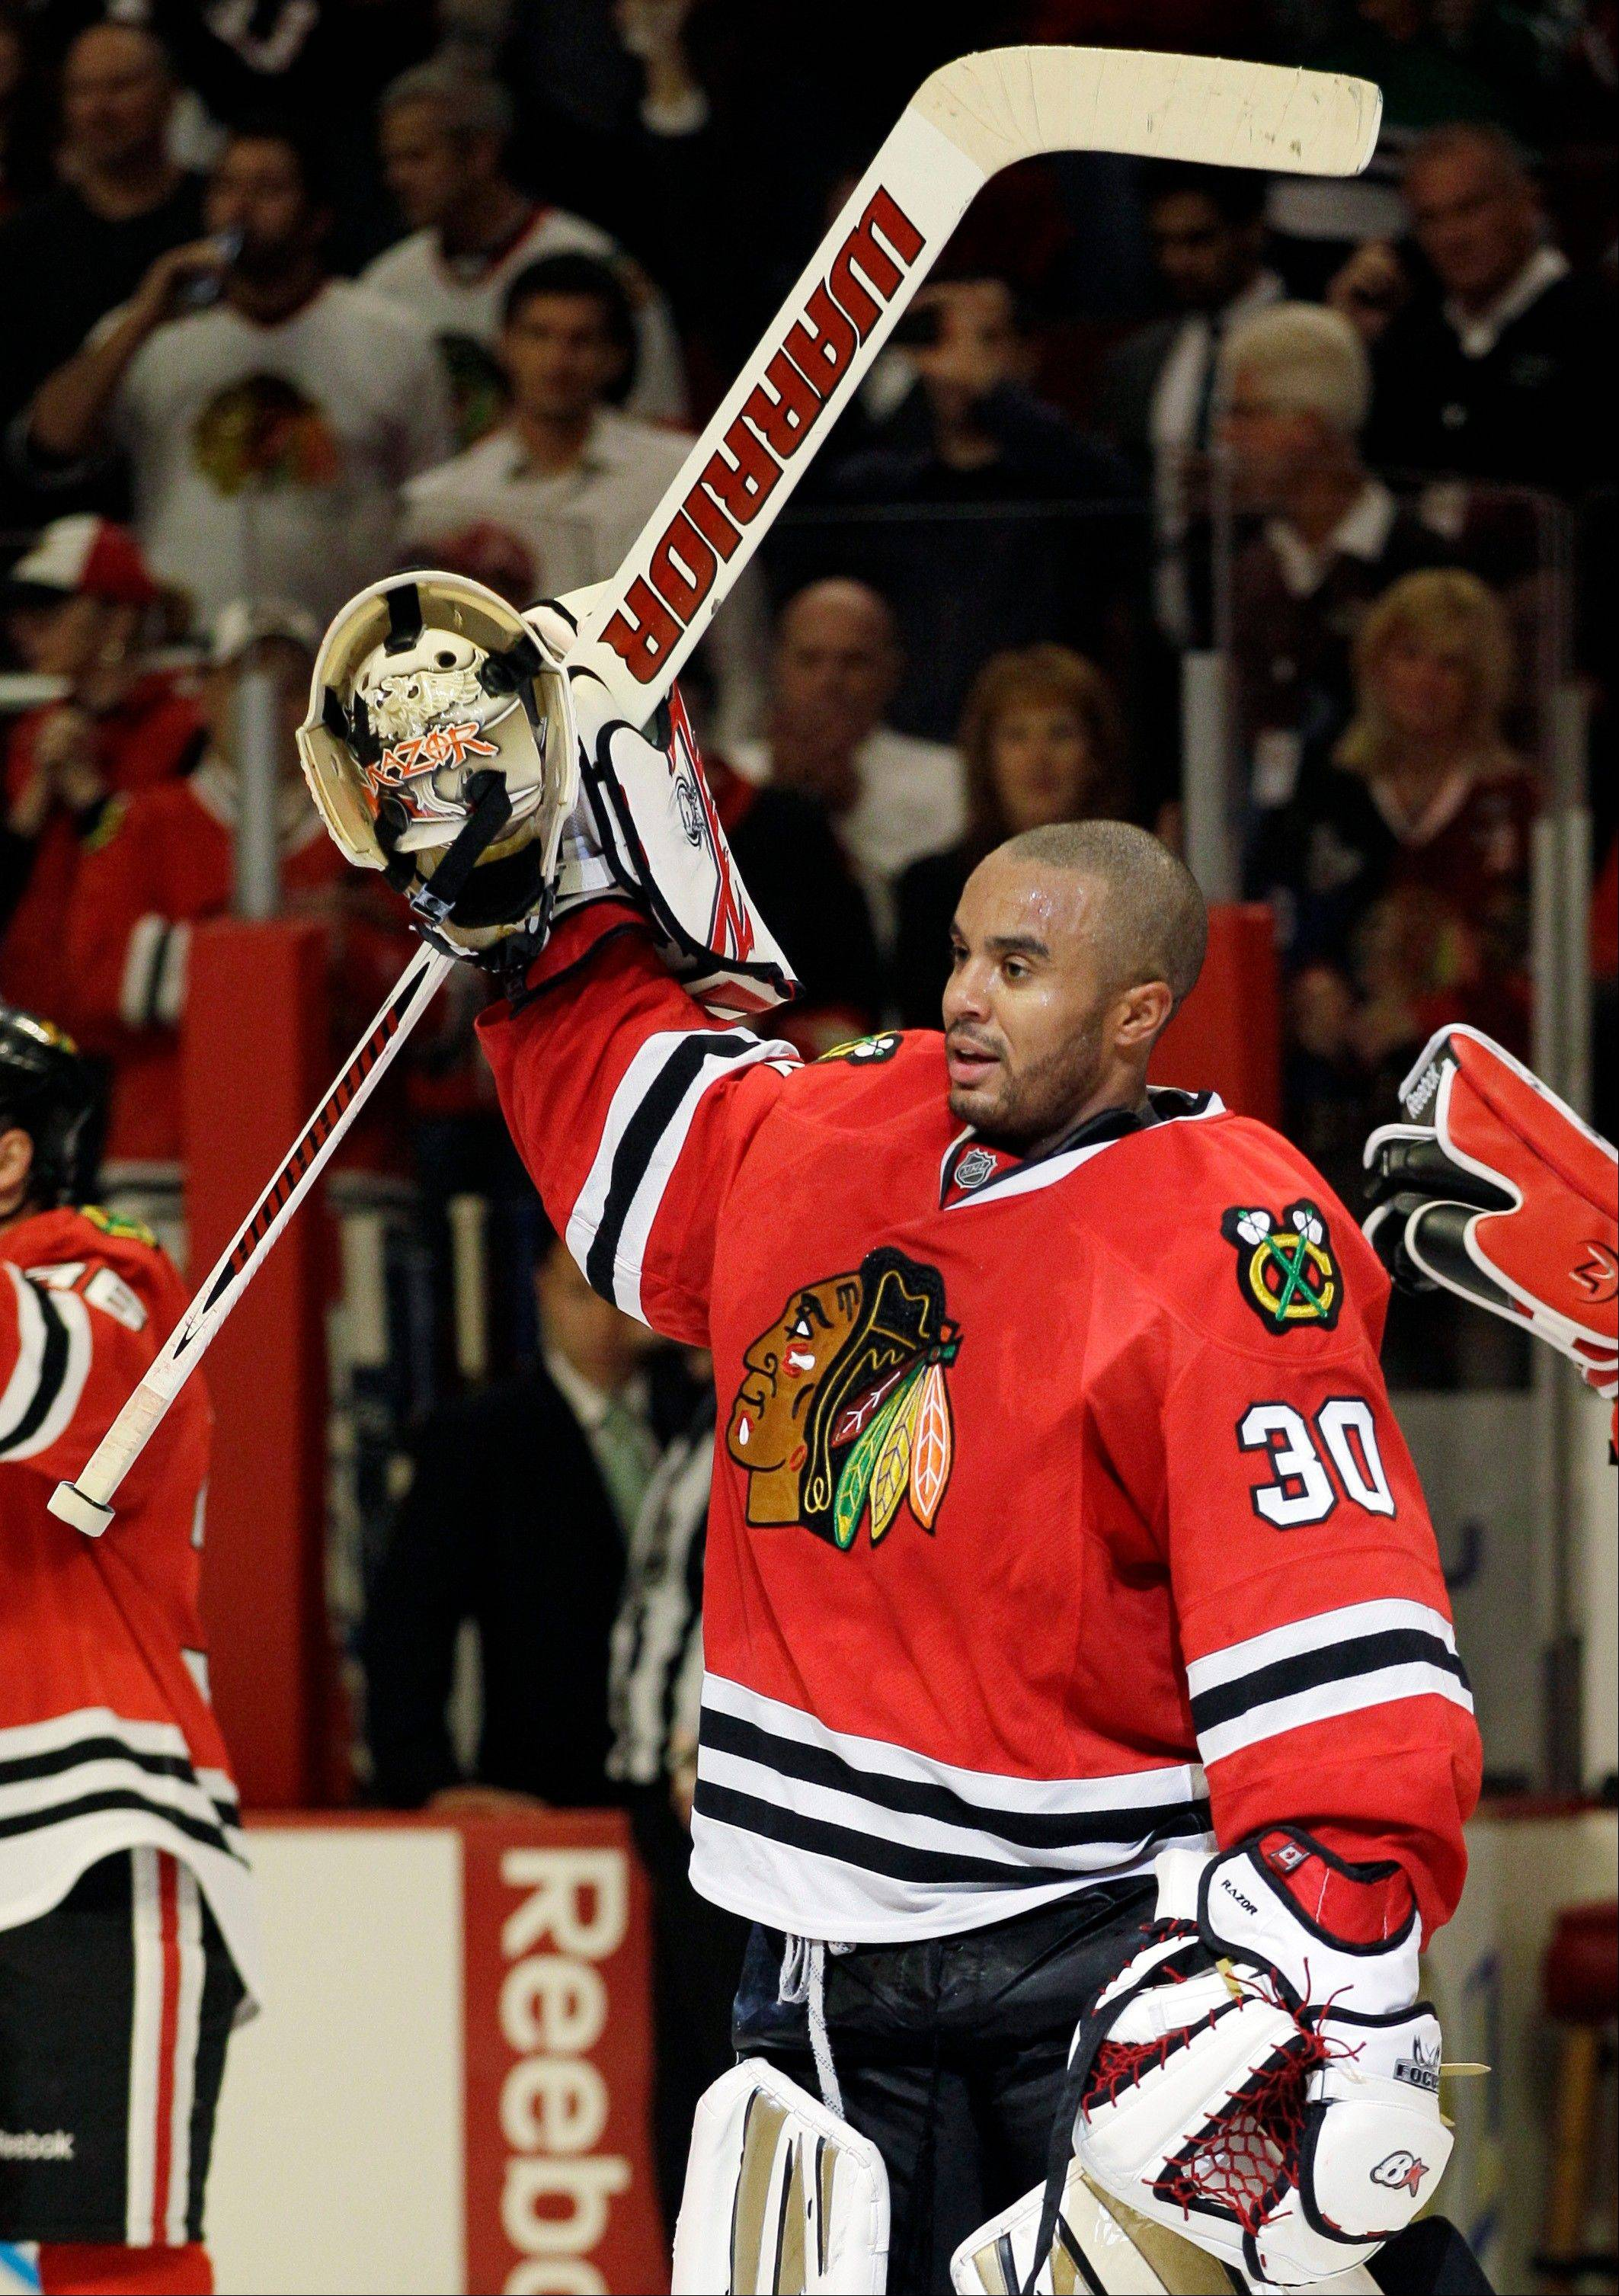 Goalie Ray Emery was showered with praise by his teammates after his brilliant 45-save performance Saturday when the Blackhawks beat the host Calgary Flames 3-2 in a shootout.